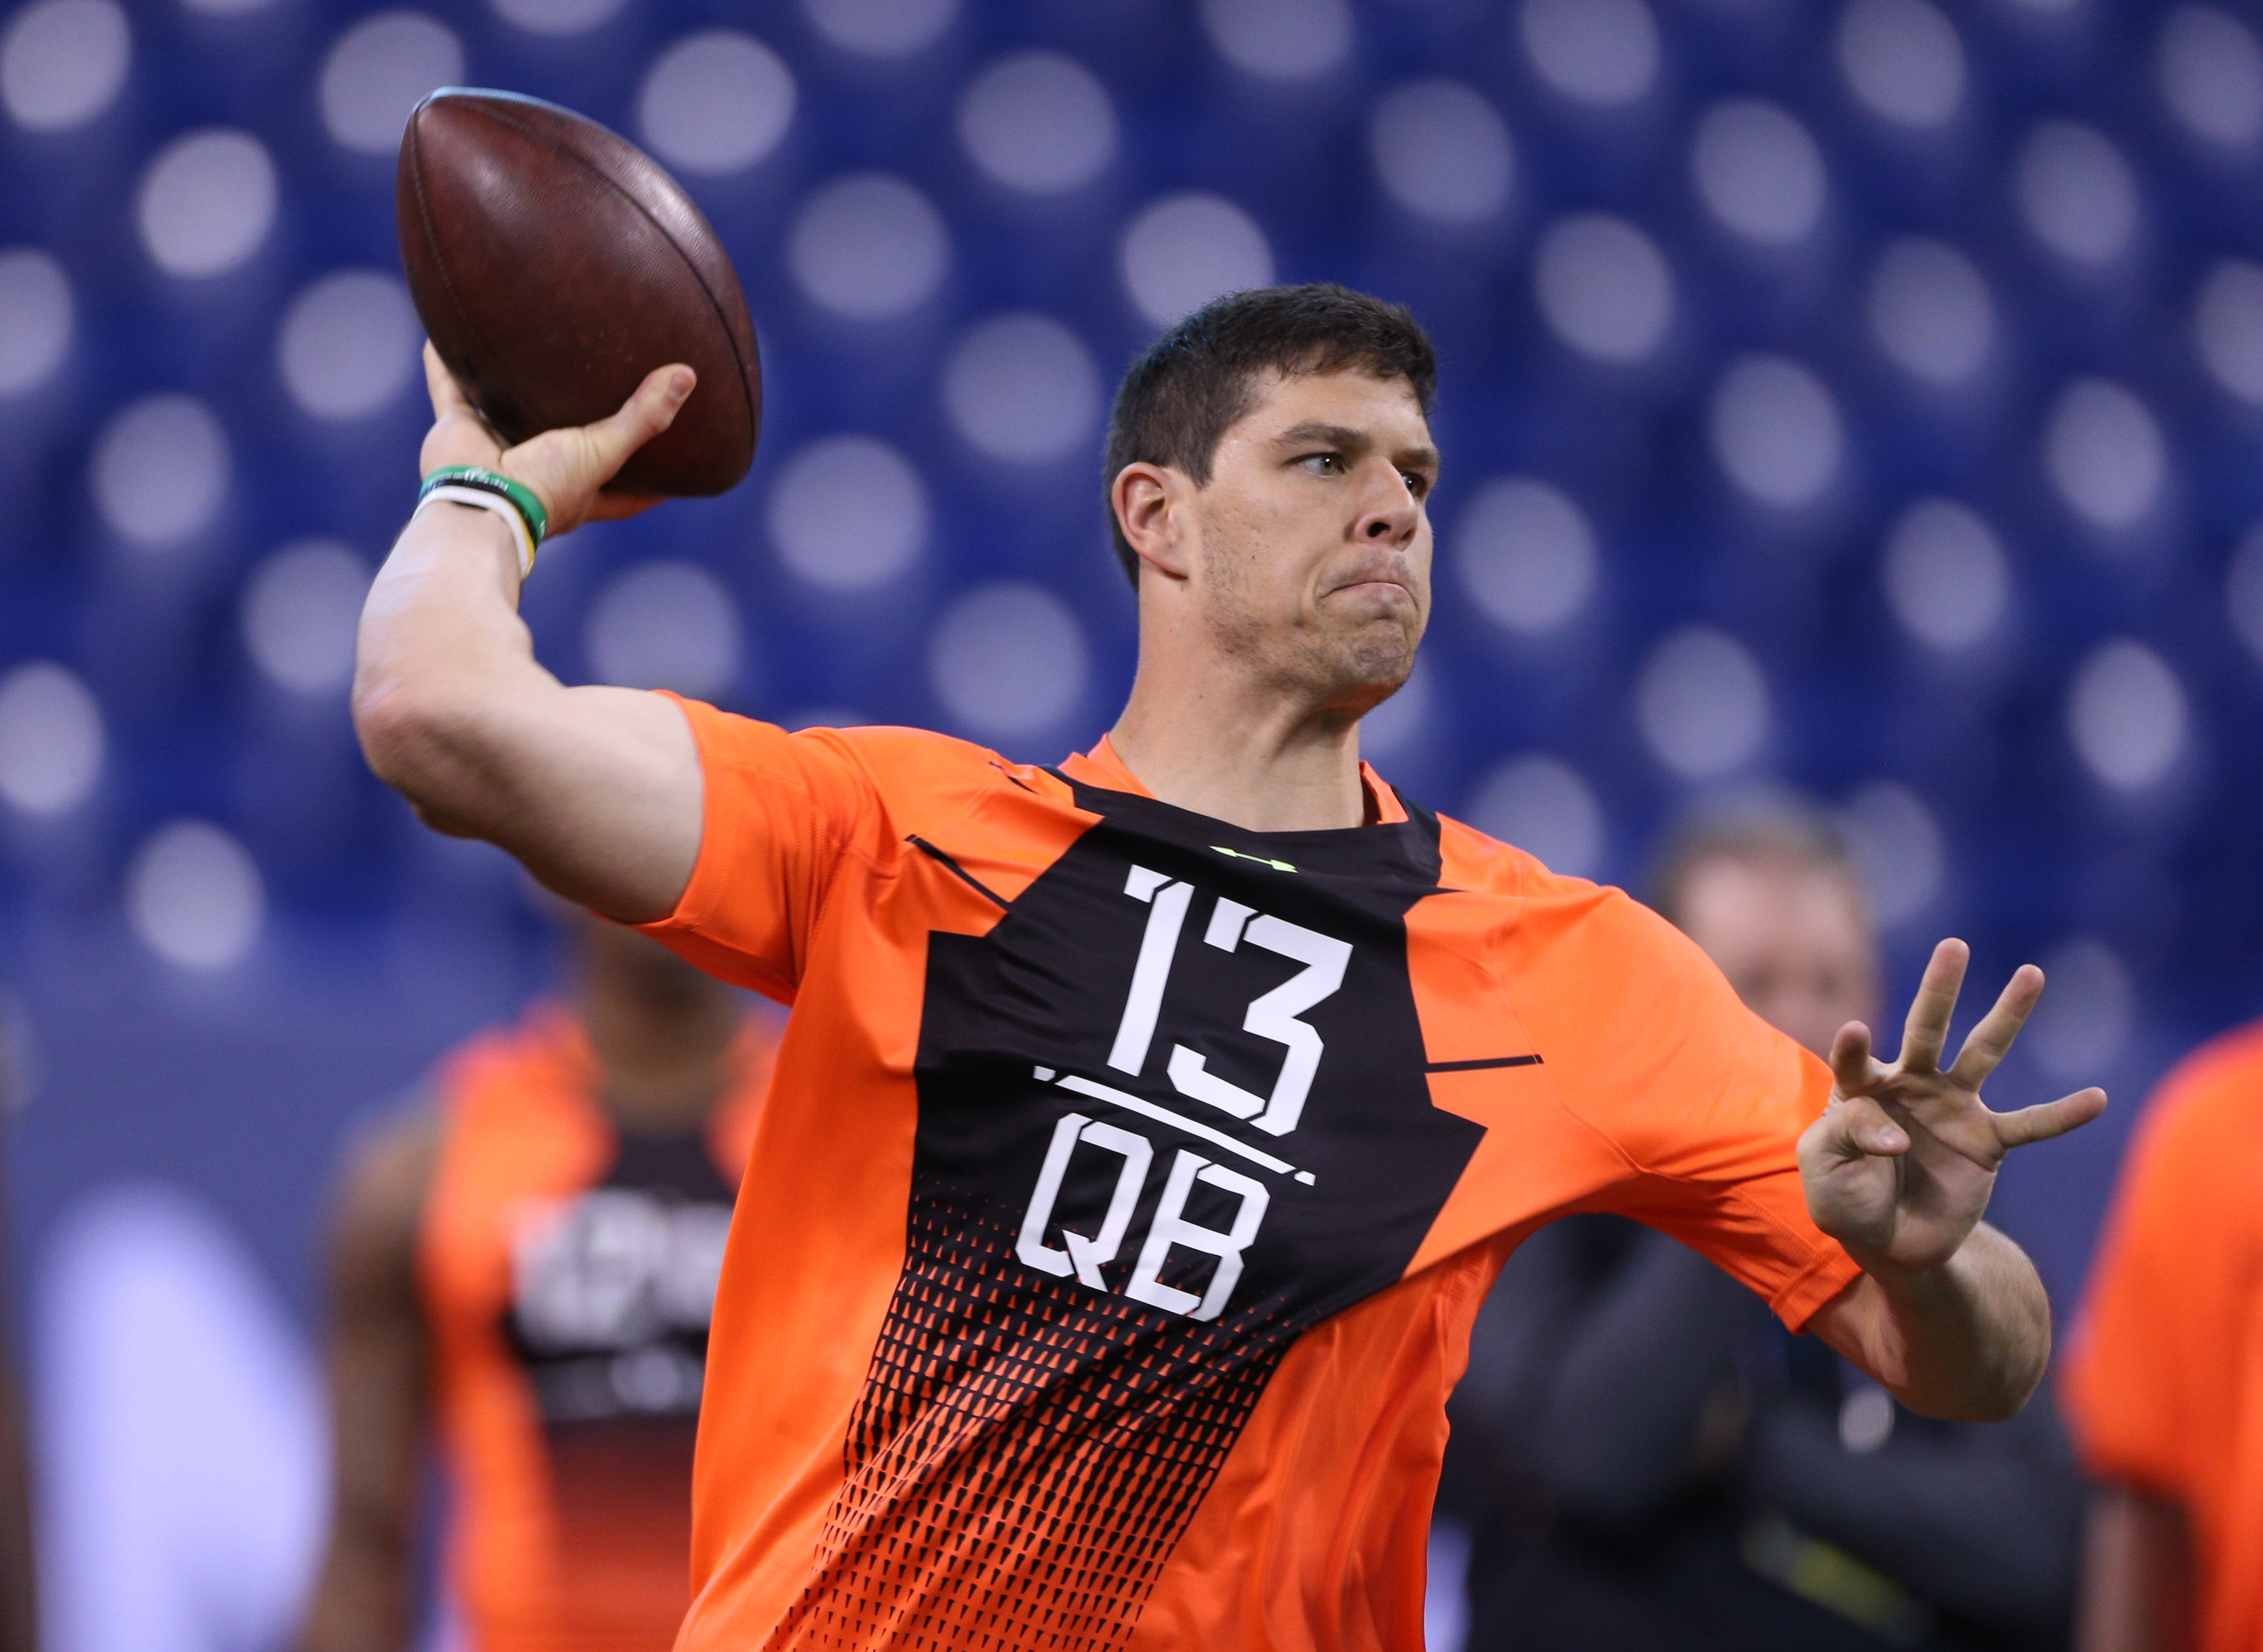 NFL Draft picks 2015: Bryce Petty goes to Jets in 4th round